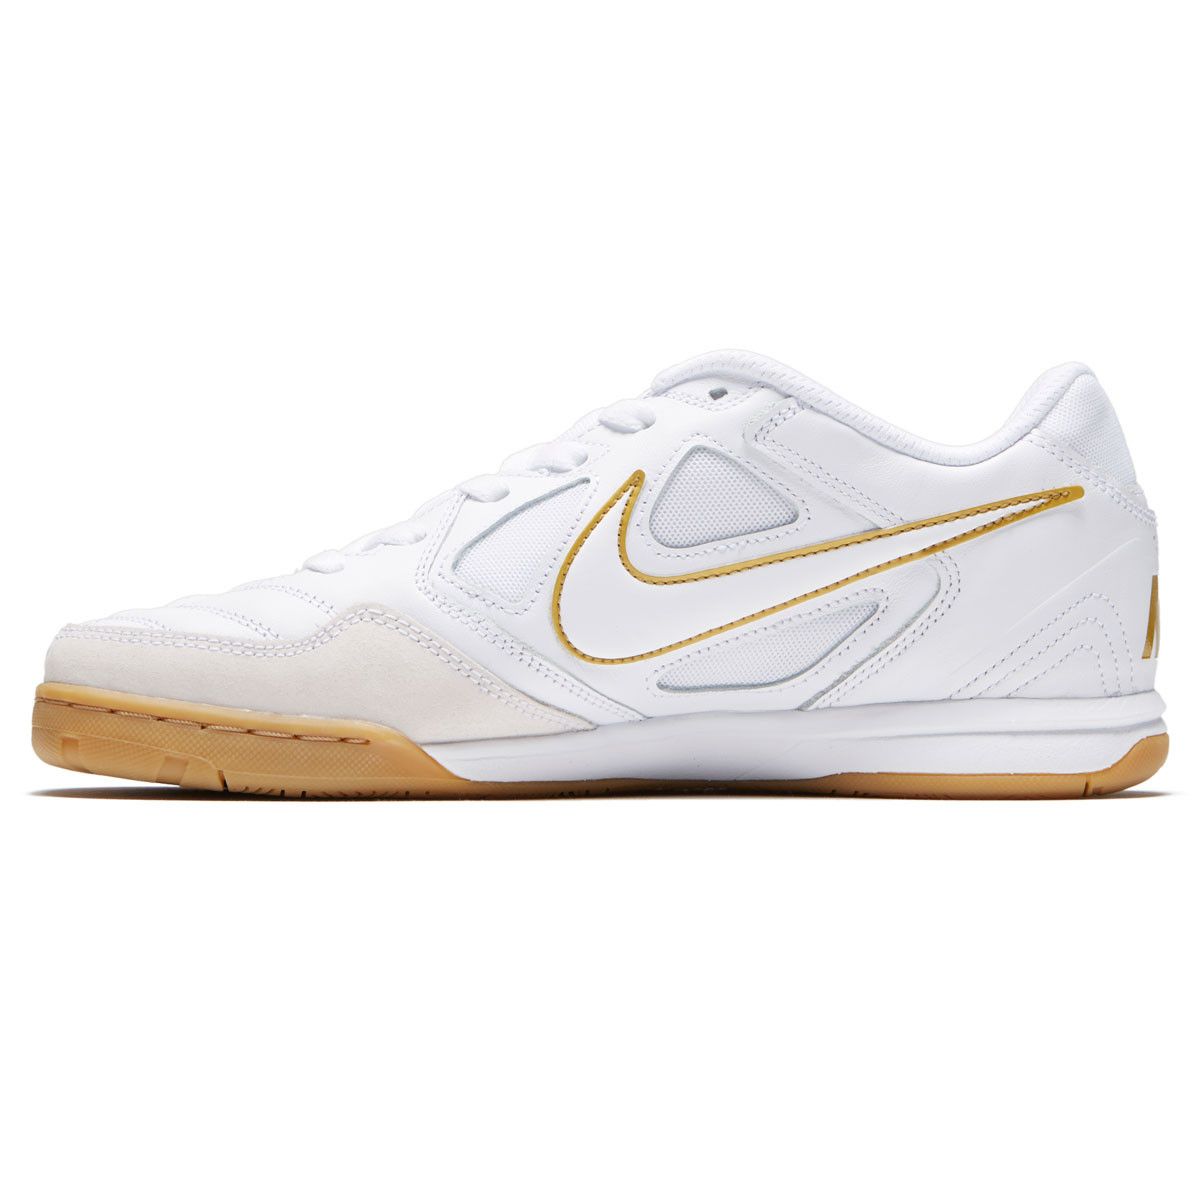 387fd0c5b7 Nike SB Gato Shoes - White White Metallic Gold - 10.0